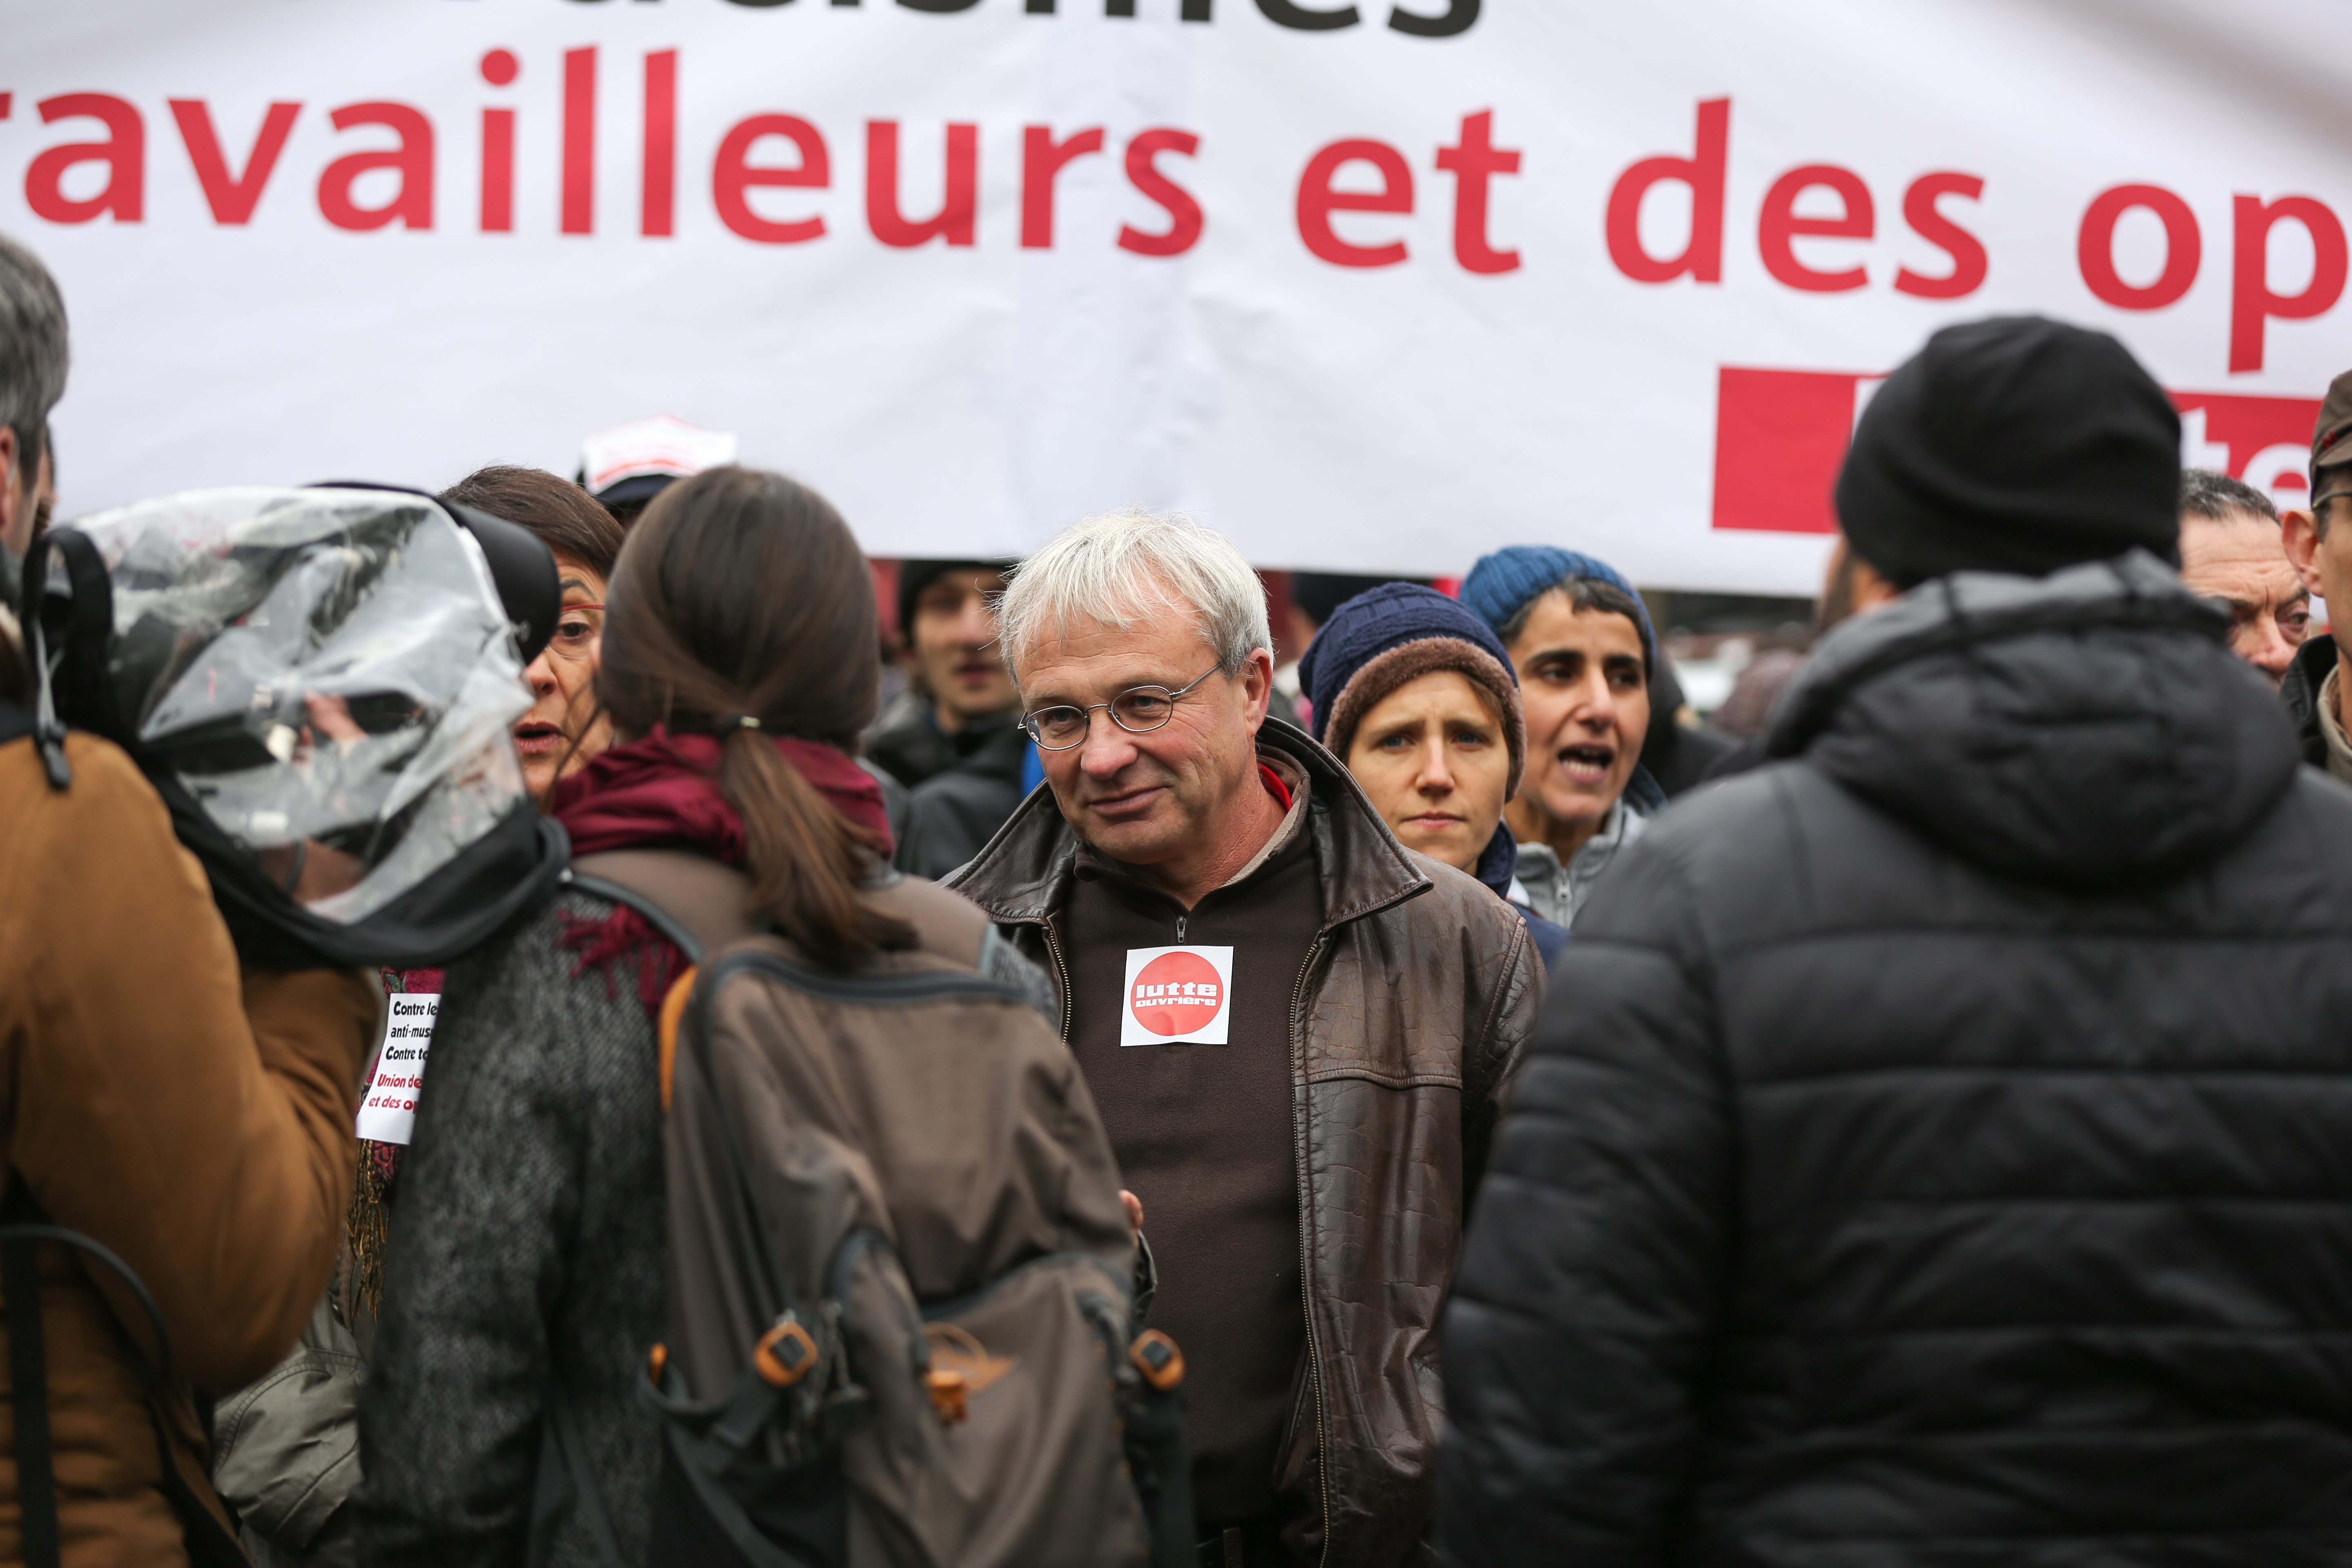 Far-left Lutte ouvriere (LO) former party candidate for the European election Jean-Pierre Mercier (C) takes part in a march near the Gare du Nord, in Paris, on November 10, 2019, to protest against Islamophobia, at the call of several anti-racist activists